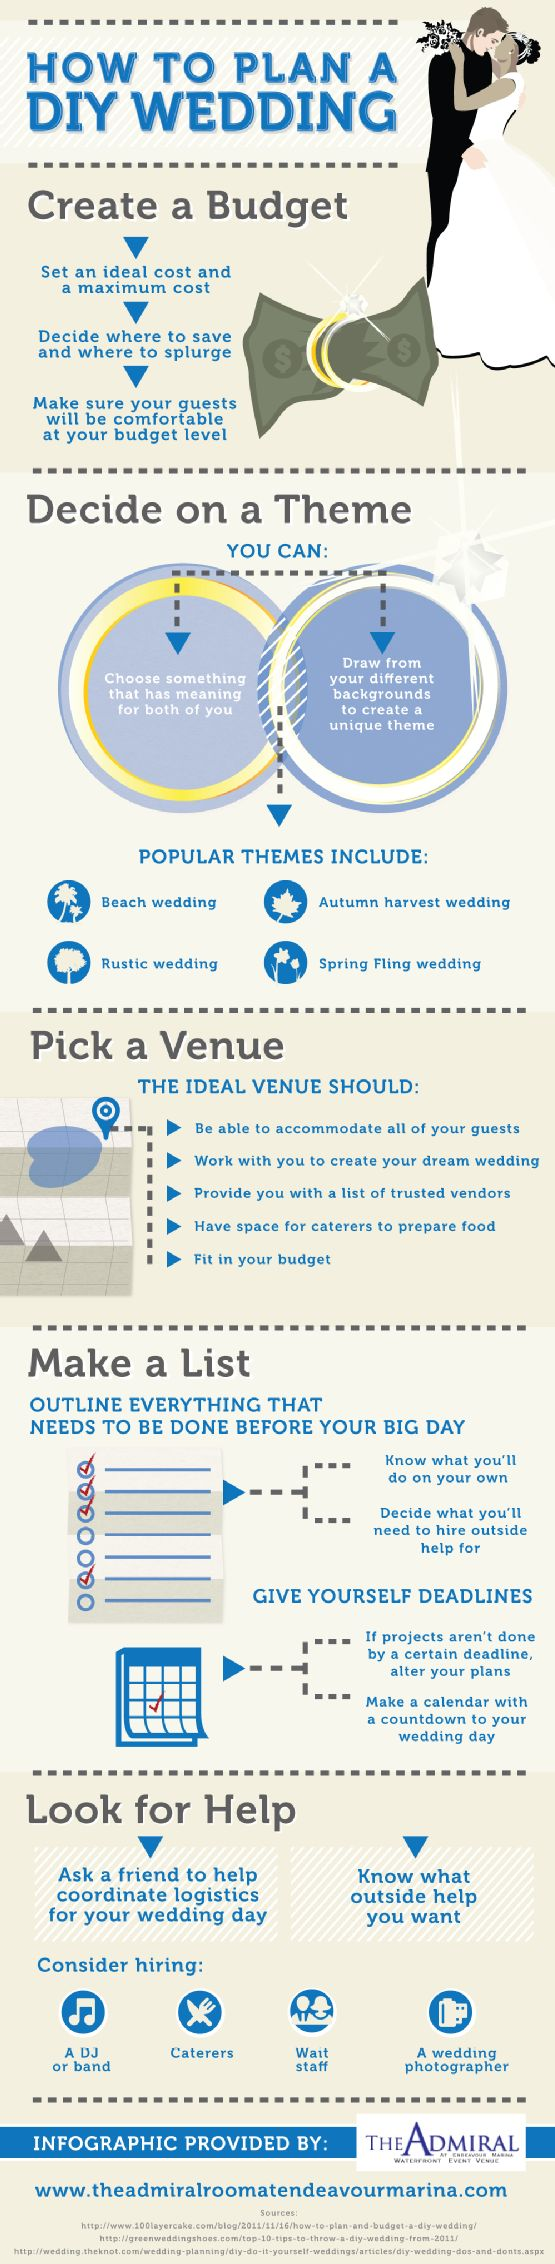 Planning a DIY wedding may seem like a challenge, but it doesn't have to be! All you need is a little organization and the tips in this infographic from a top wedding venue on Clear Lake, Texas, and you can enjoy a beautiful ceremony.